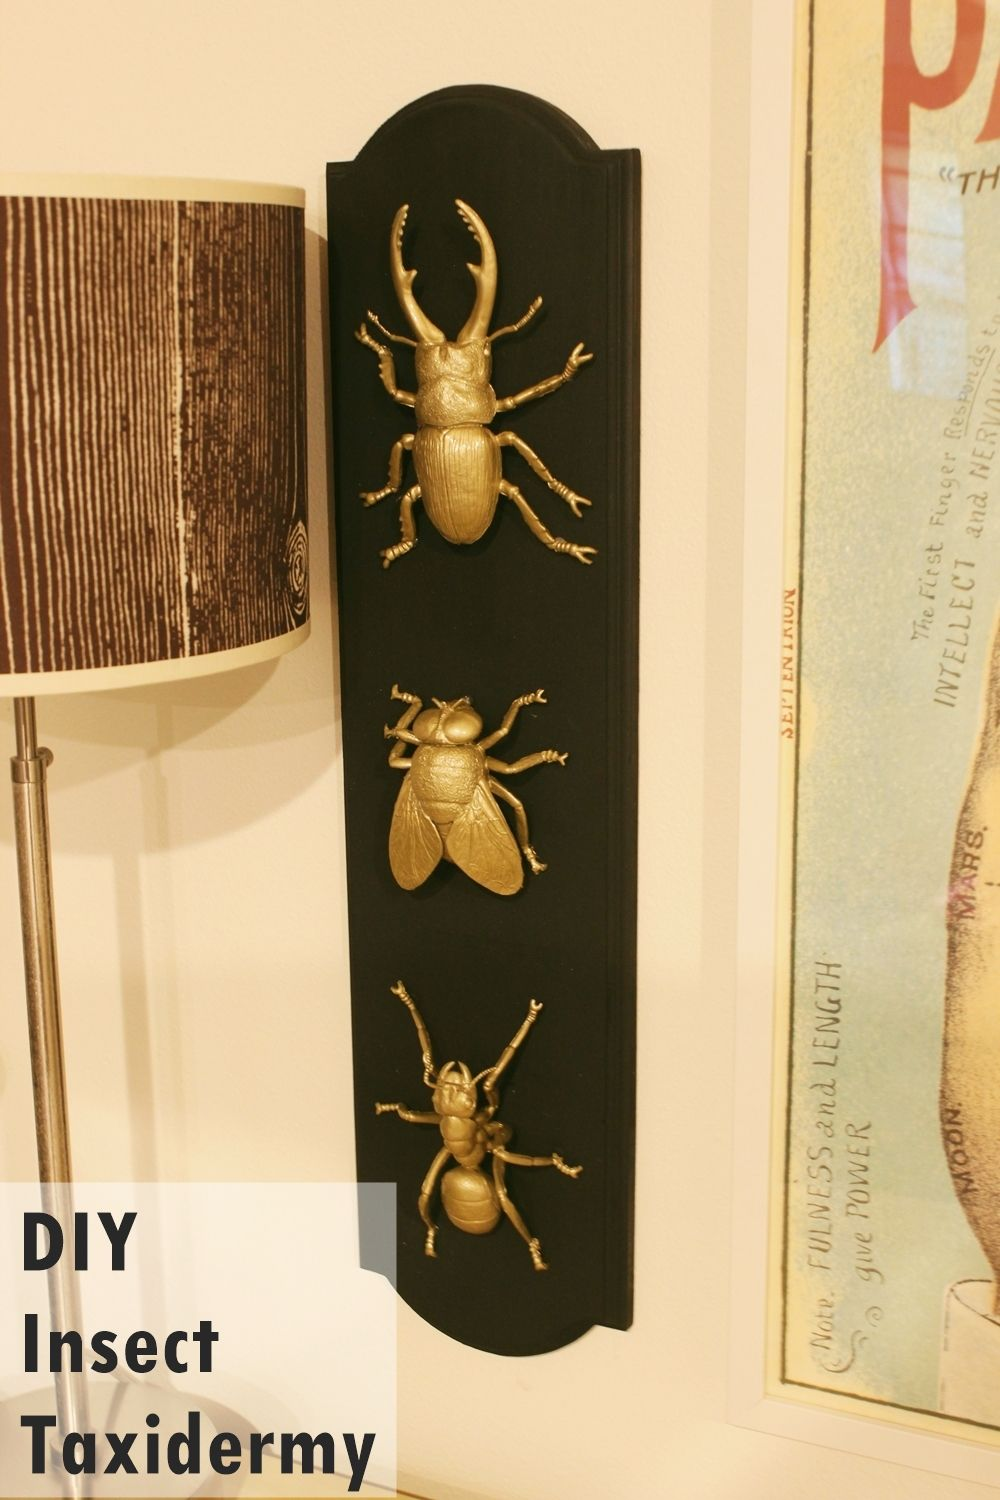 DIY Insect Taxidermy